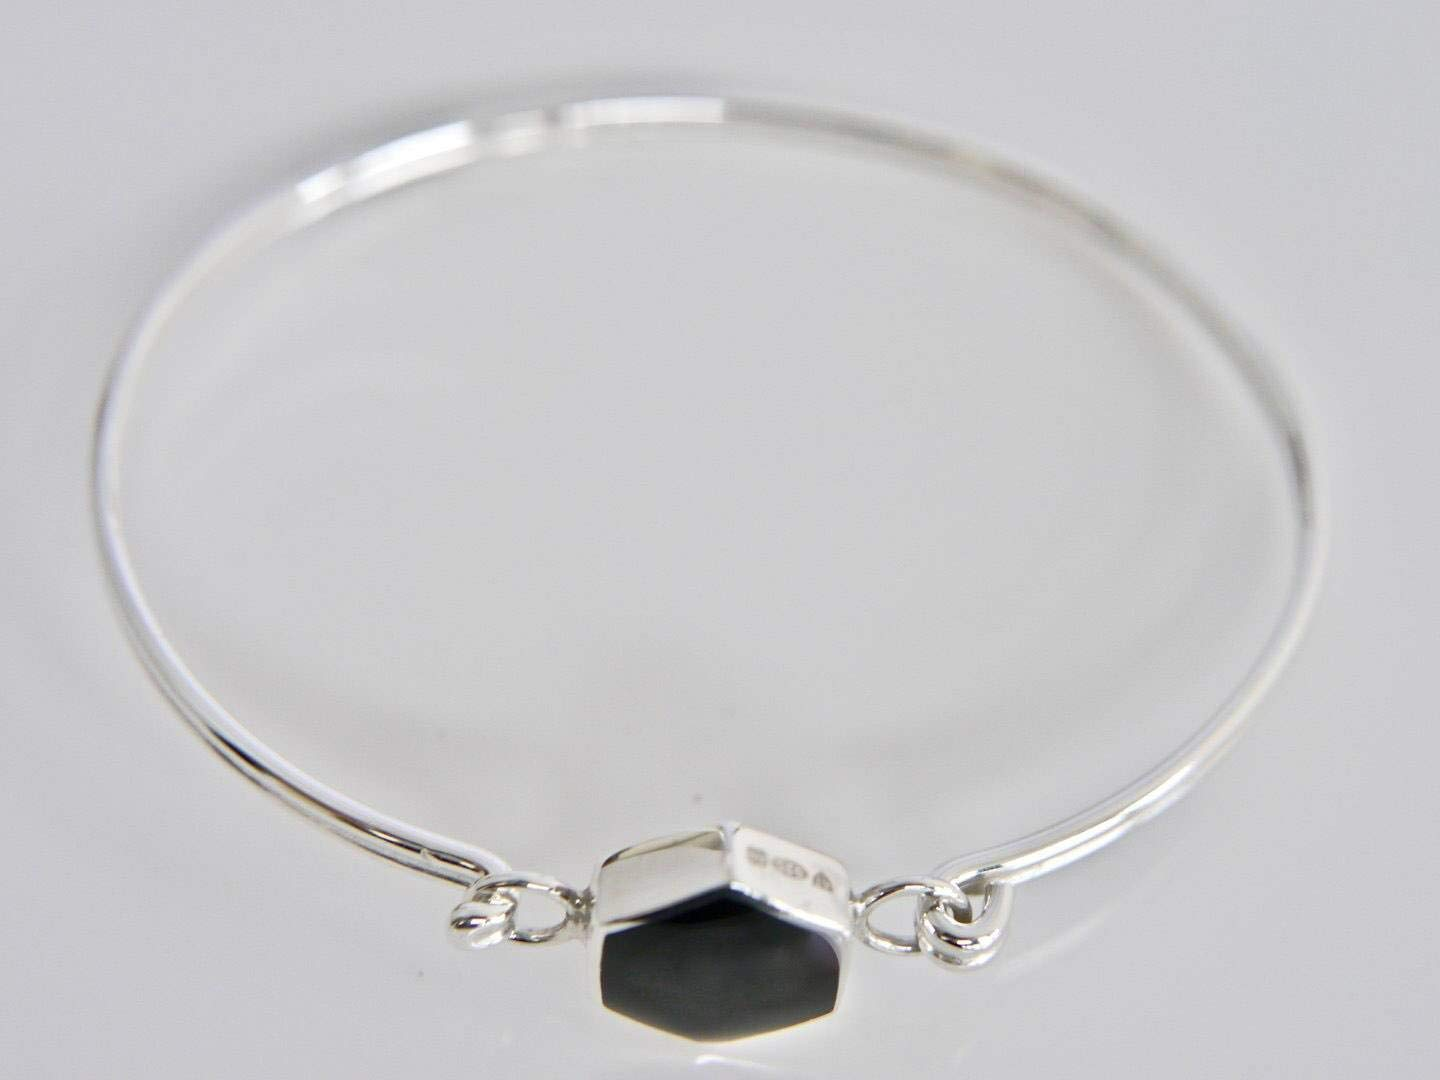 Whitby Jet Bangle- Handmade Tension Bangle set with Oval Whitby Jet Stone Silver Bangle Sterling Silver